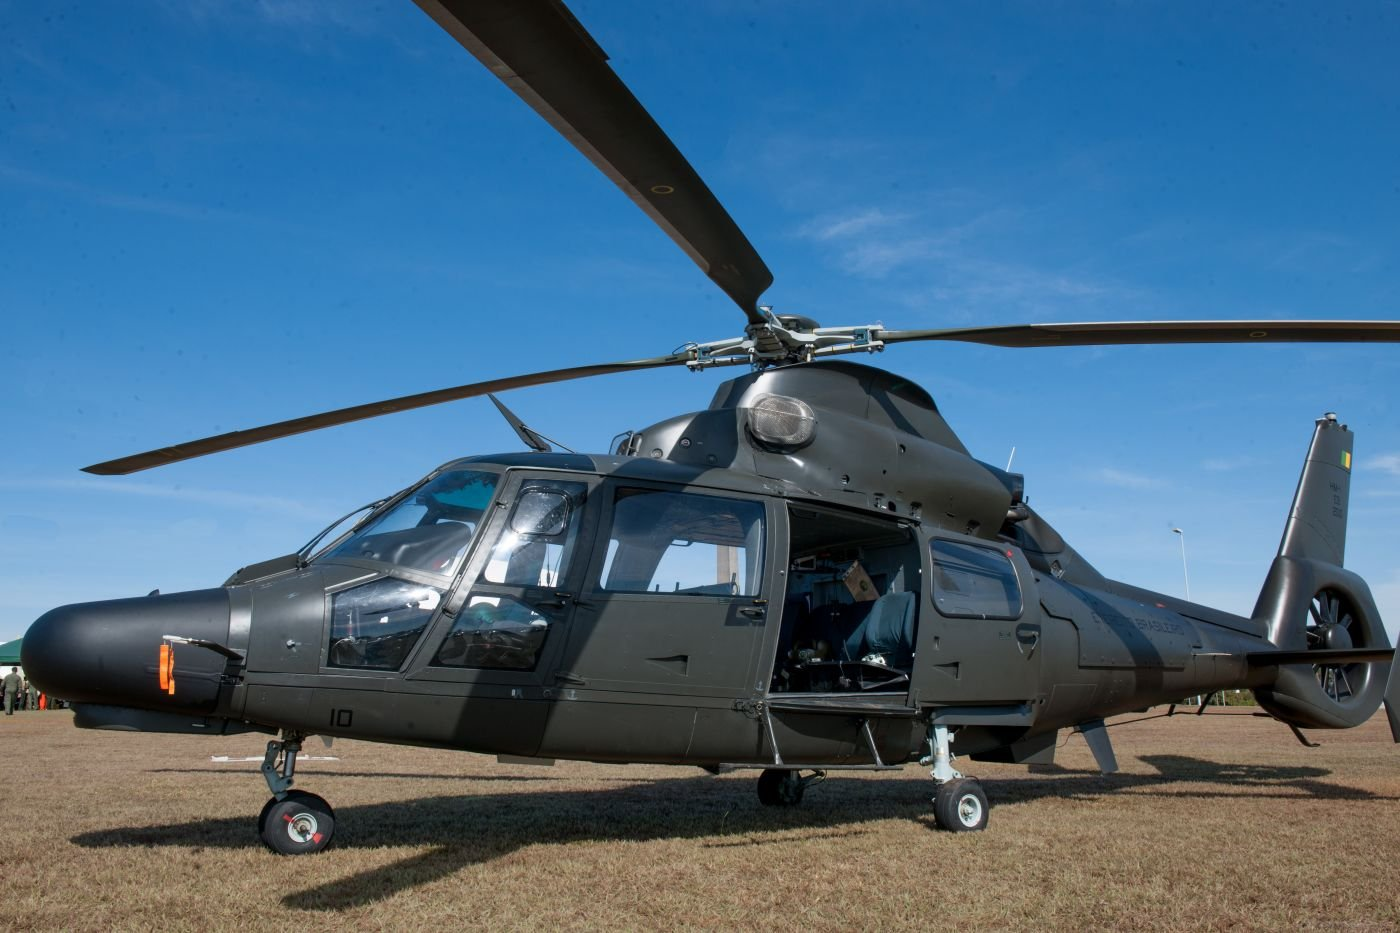 Brazilian Army Modernizes Helicopters, Reinforces Aerial Mobility